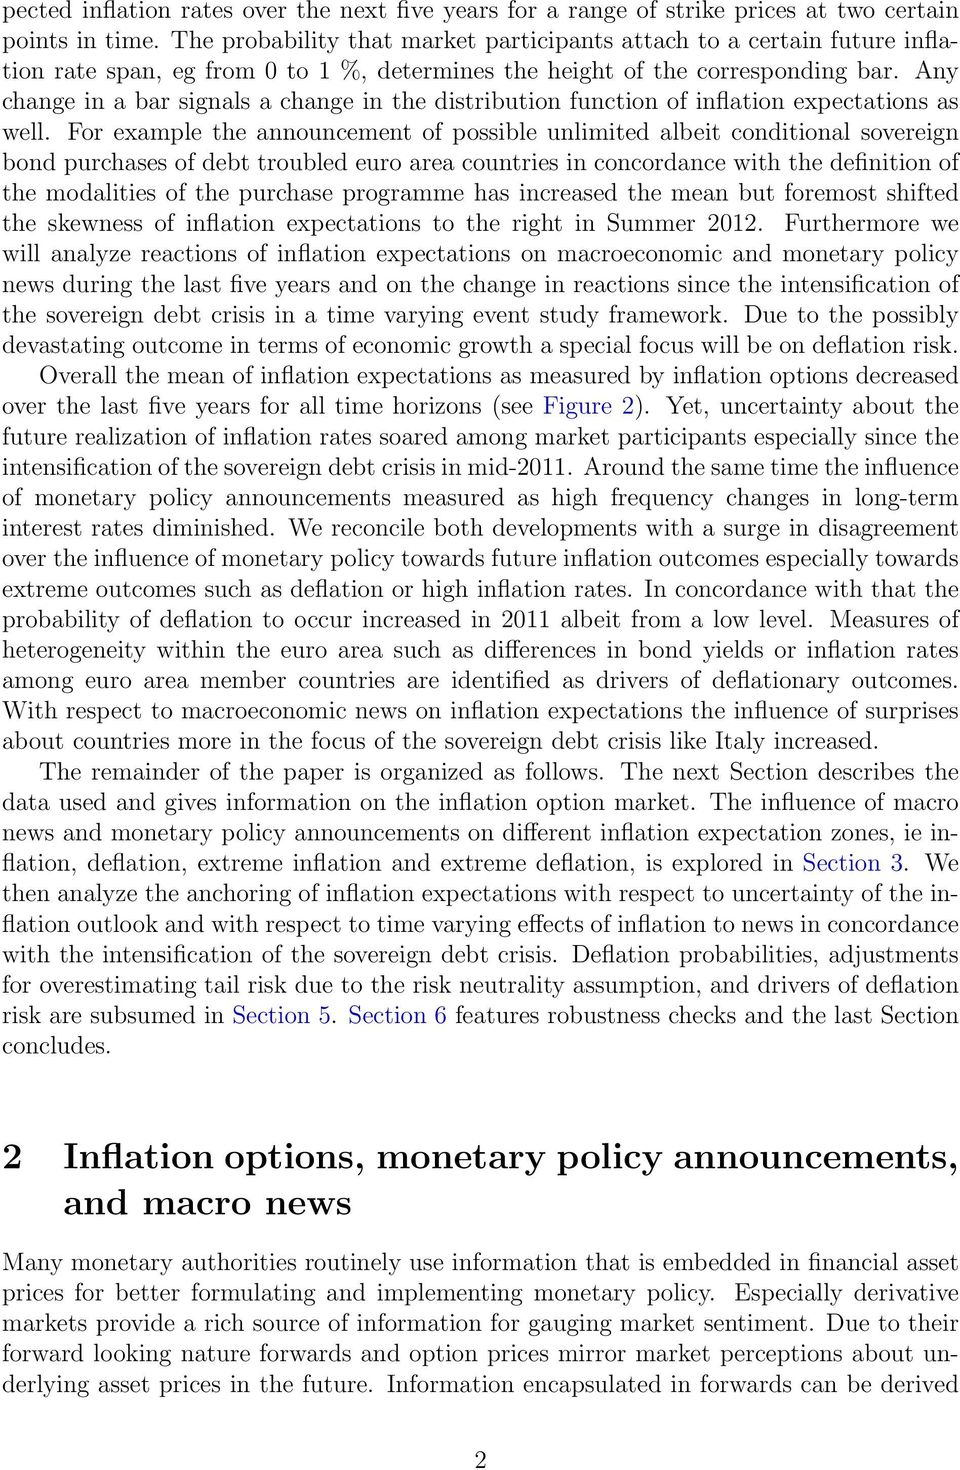 Any change in a bar signals a change in the distribution function of inflation expectations as well.